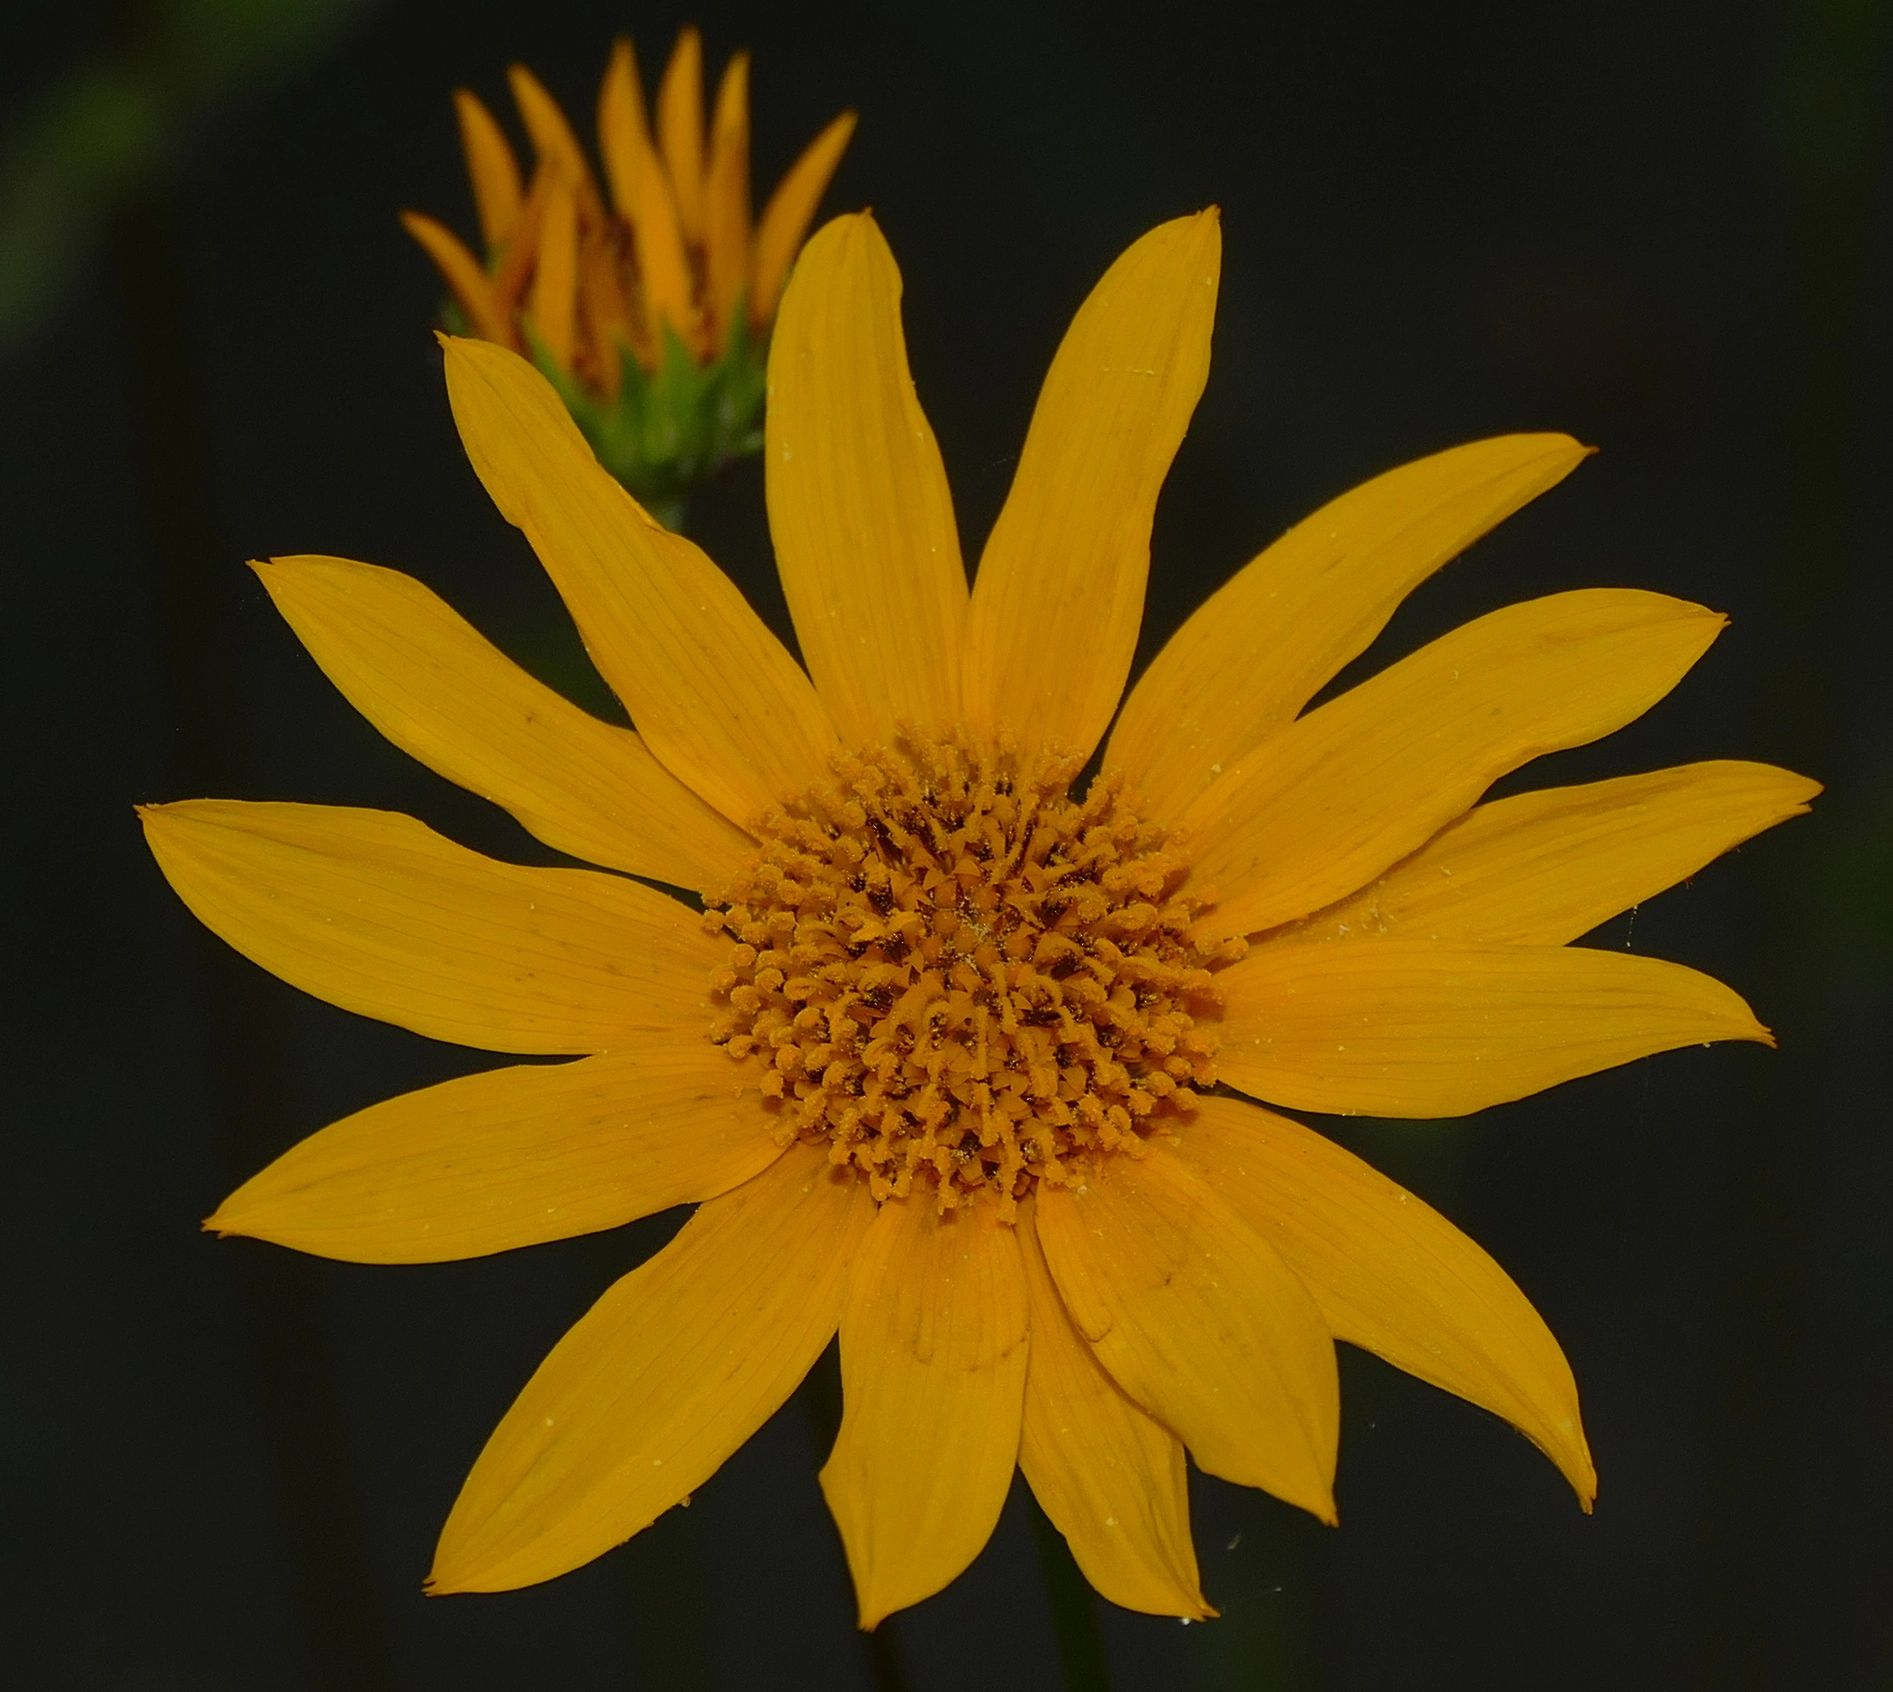 "{""blocks"":[{""key"":""auvq5"",""text"":"" Helianthus occidentalis few leaf Western Sunflower - potted plants email john@easywildflowers.com \t"",""type"":""unstyled"",""depth"":0,""inlineStyleRanges"":[],""entityRanges"":[],""data"":{}}],""entityMap"":{}}"